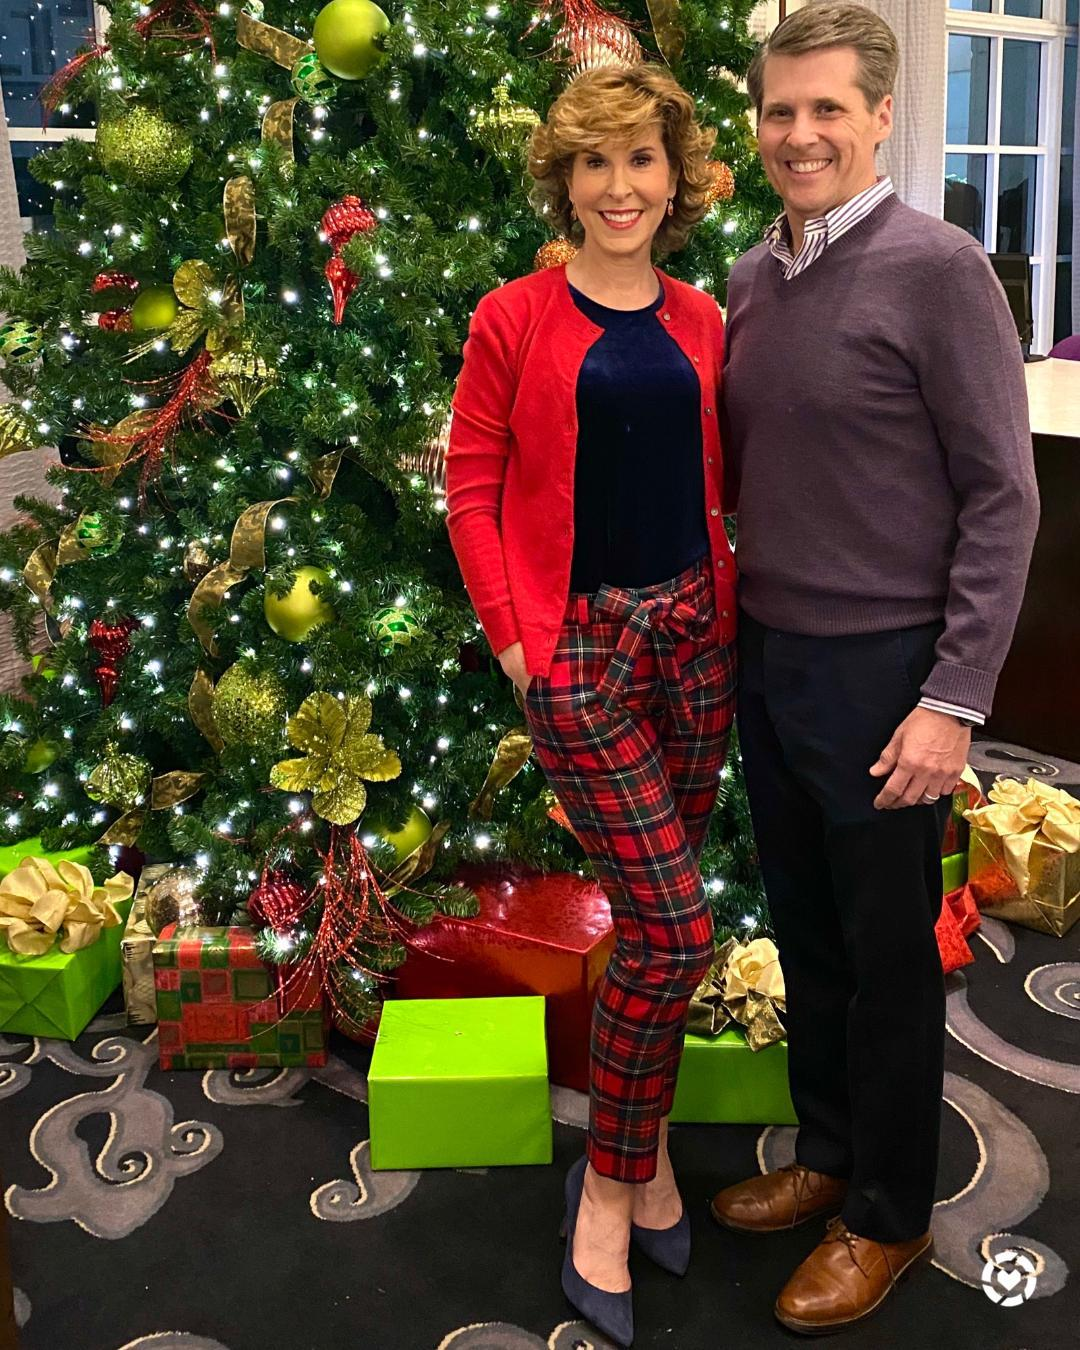 couple wearing party attire posing in front of a christmas tree